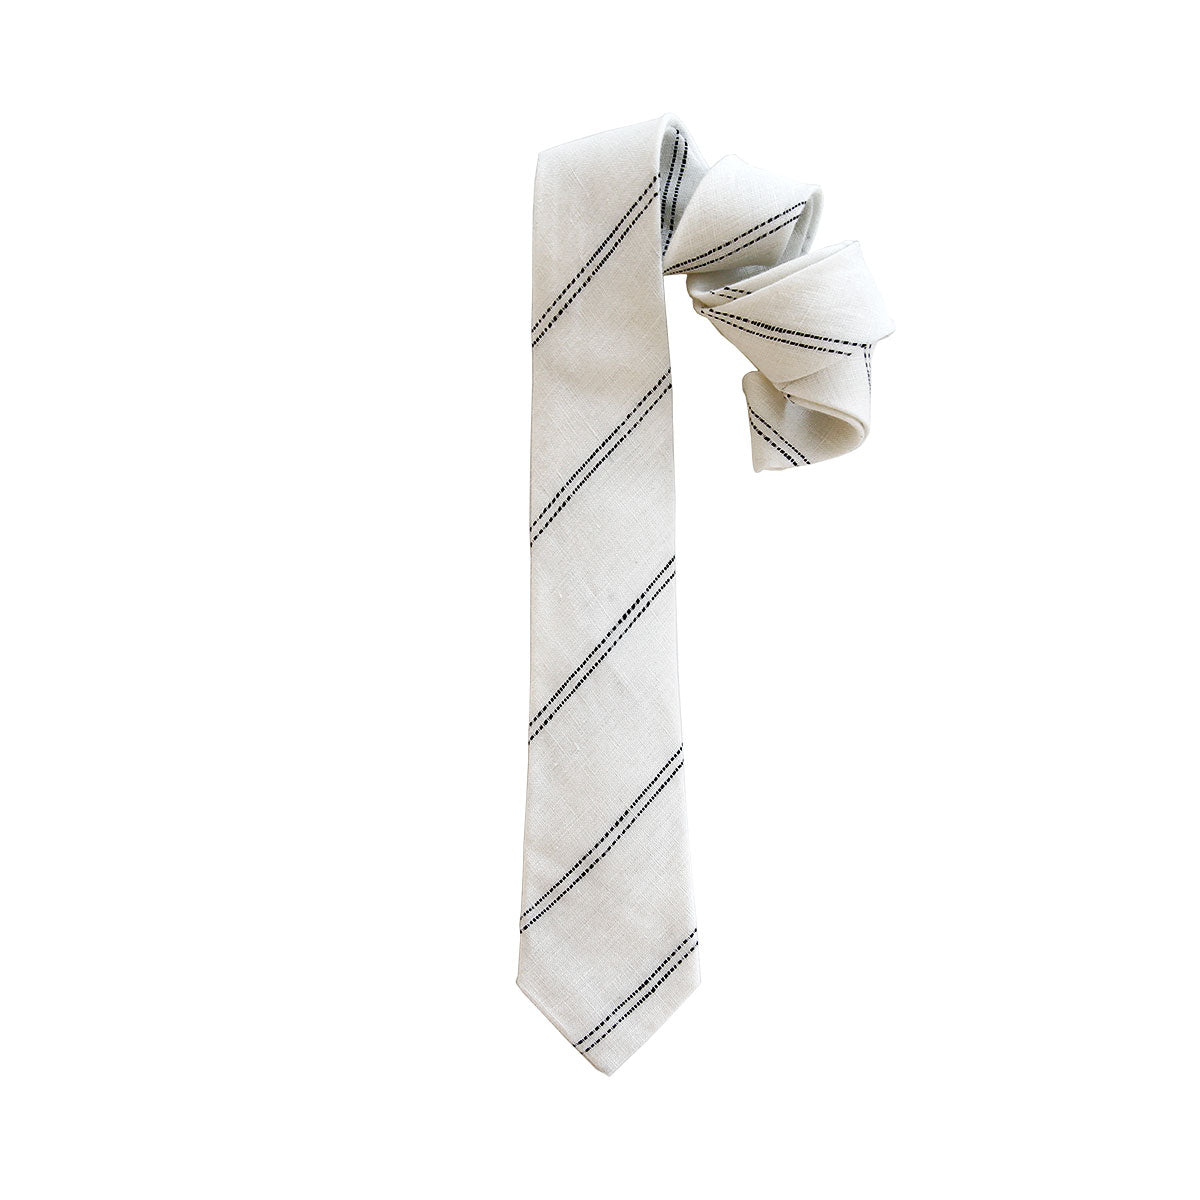 The Dover Necktie